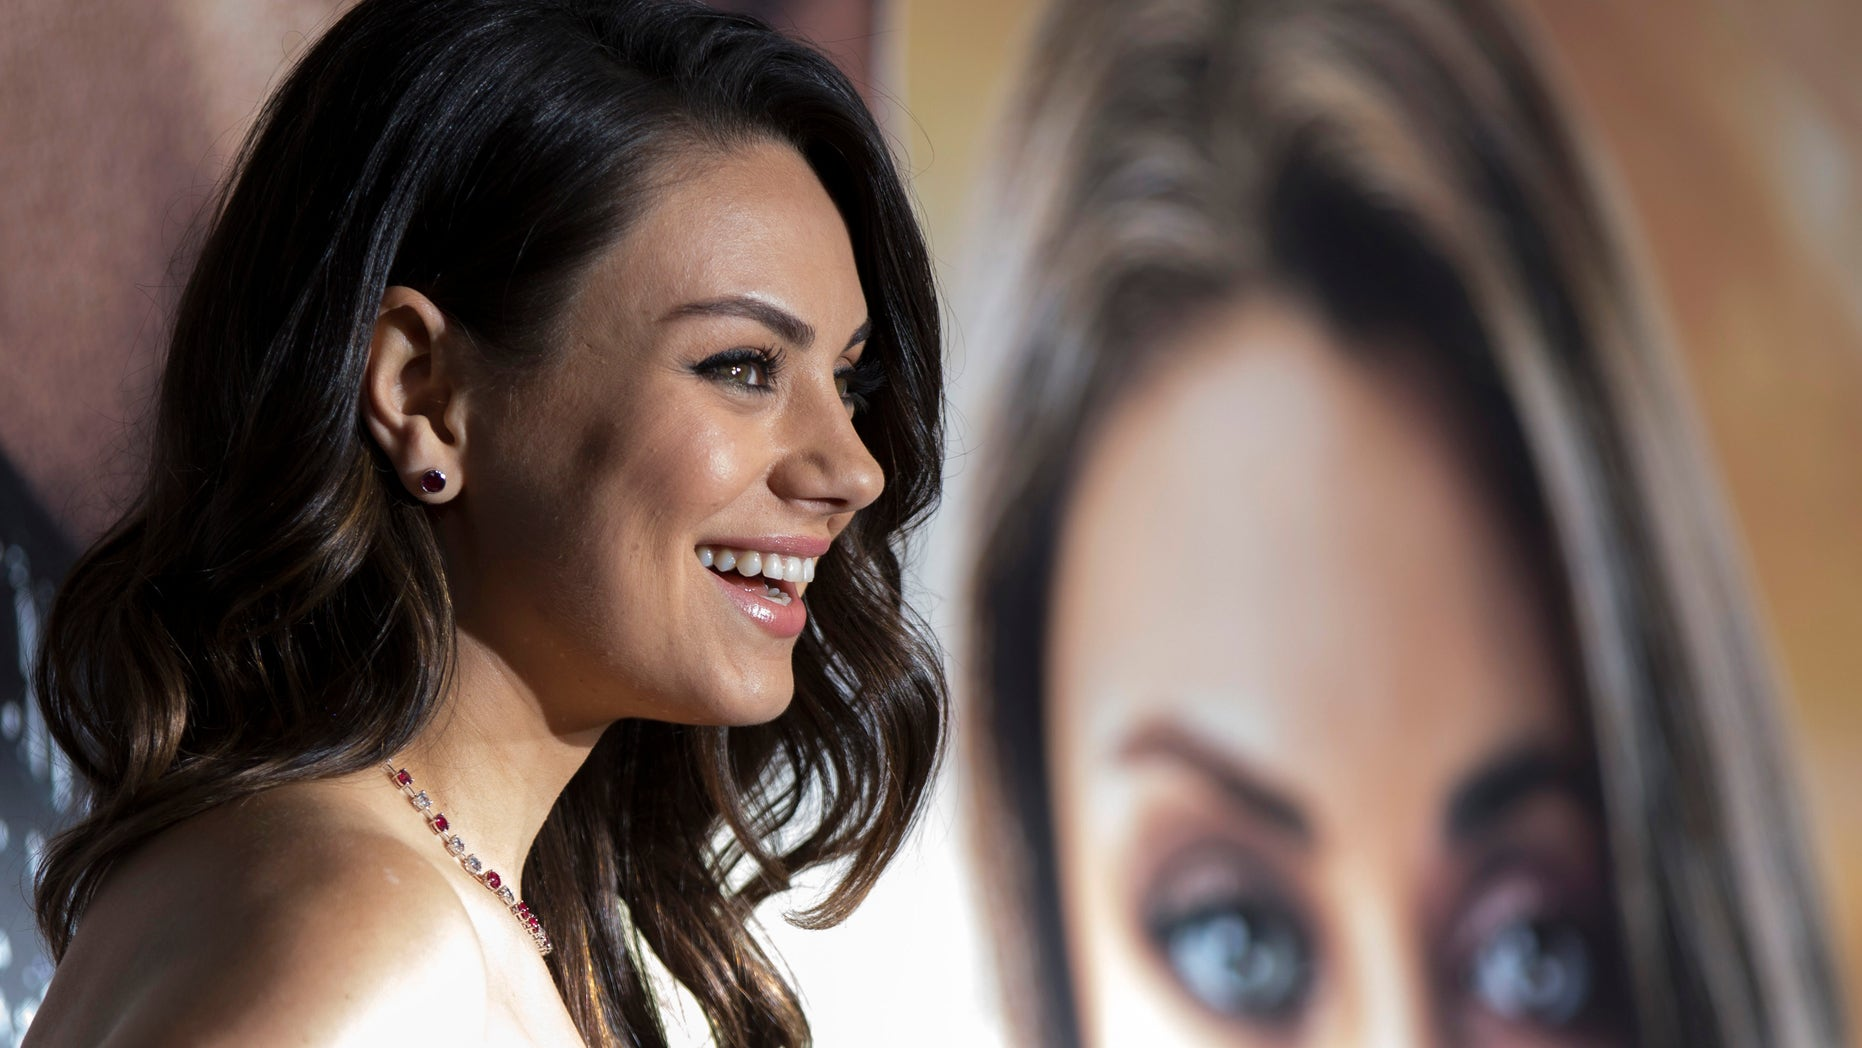 """February 2, 2015. Cast member Mila Kunis poses at the premiere of """"Jupiter Ascending"""" at the TCL Chinese theatre in Hollywood, California."""